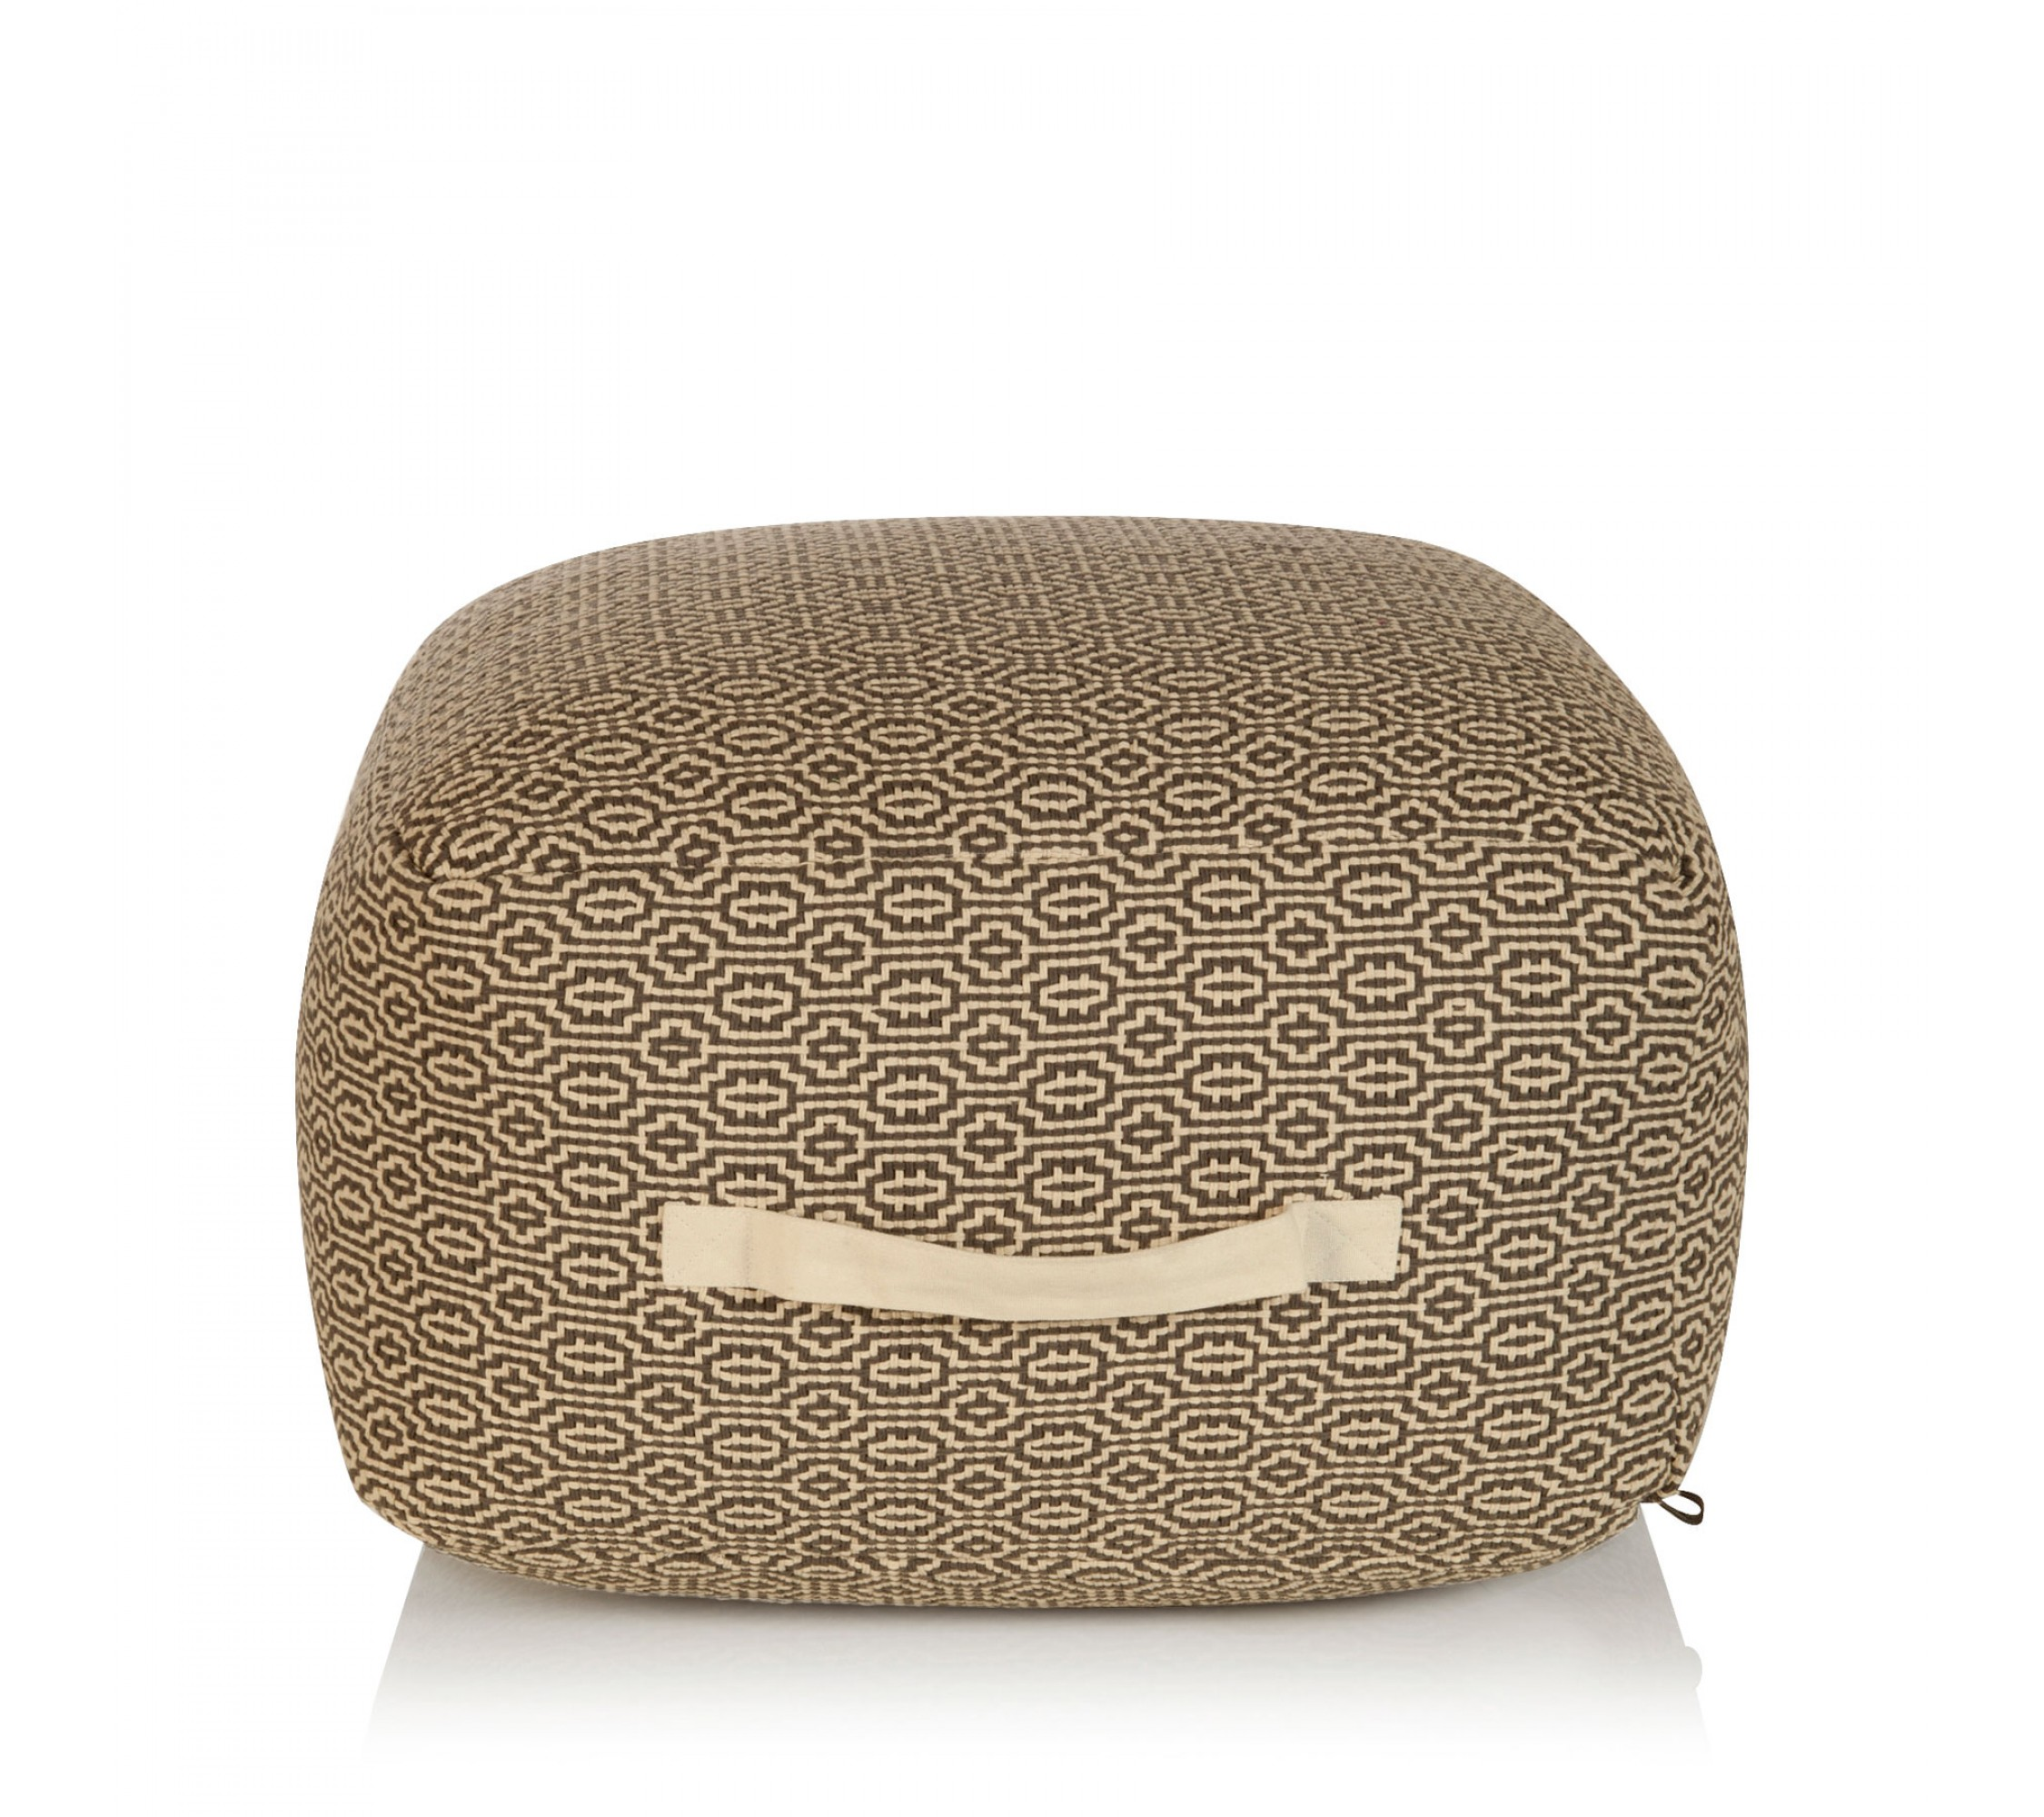 Pouf - Cambridge Pouff Grey